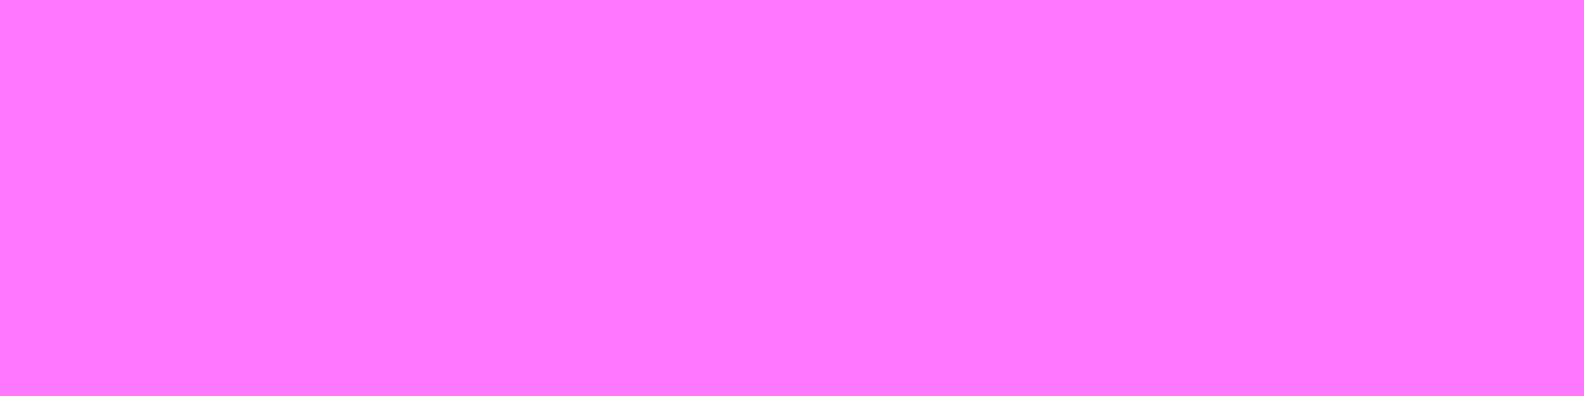 1584x396 Fuchsia Pink Solid Color Background